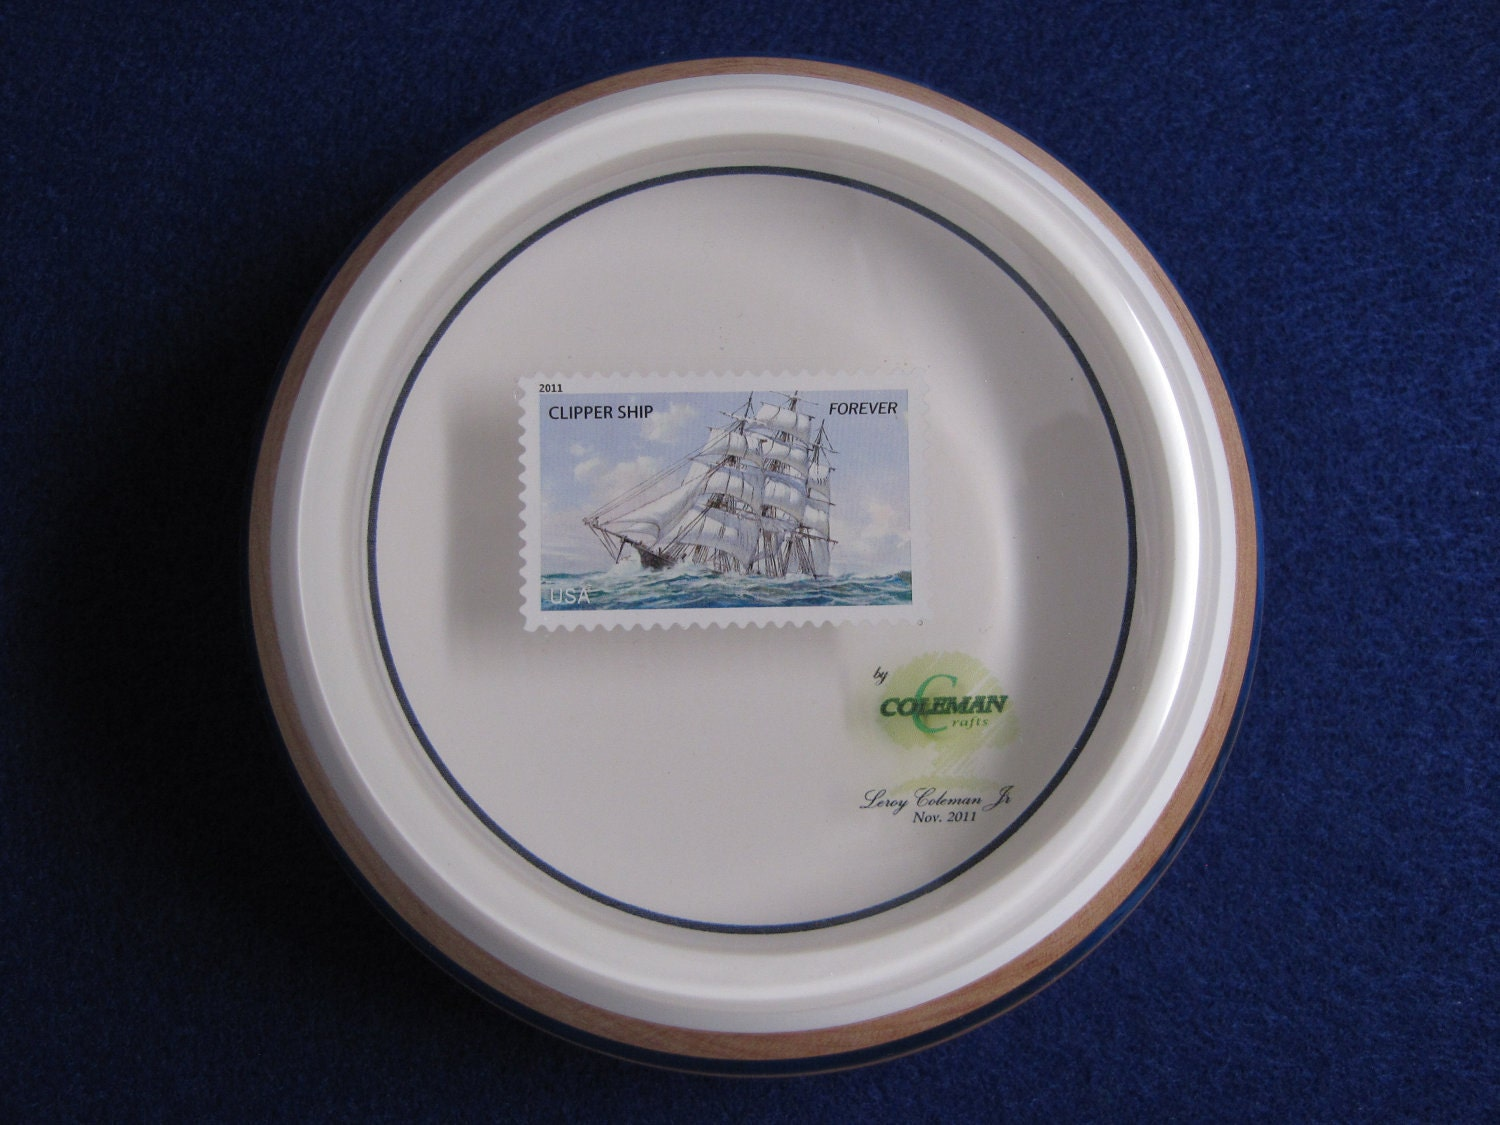 HARDMAPLE Bowl With CLIPPER SHIP (2011) Stamp Embeded